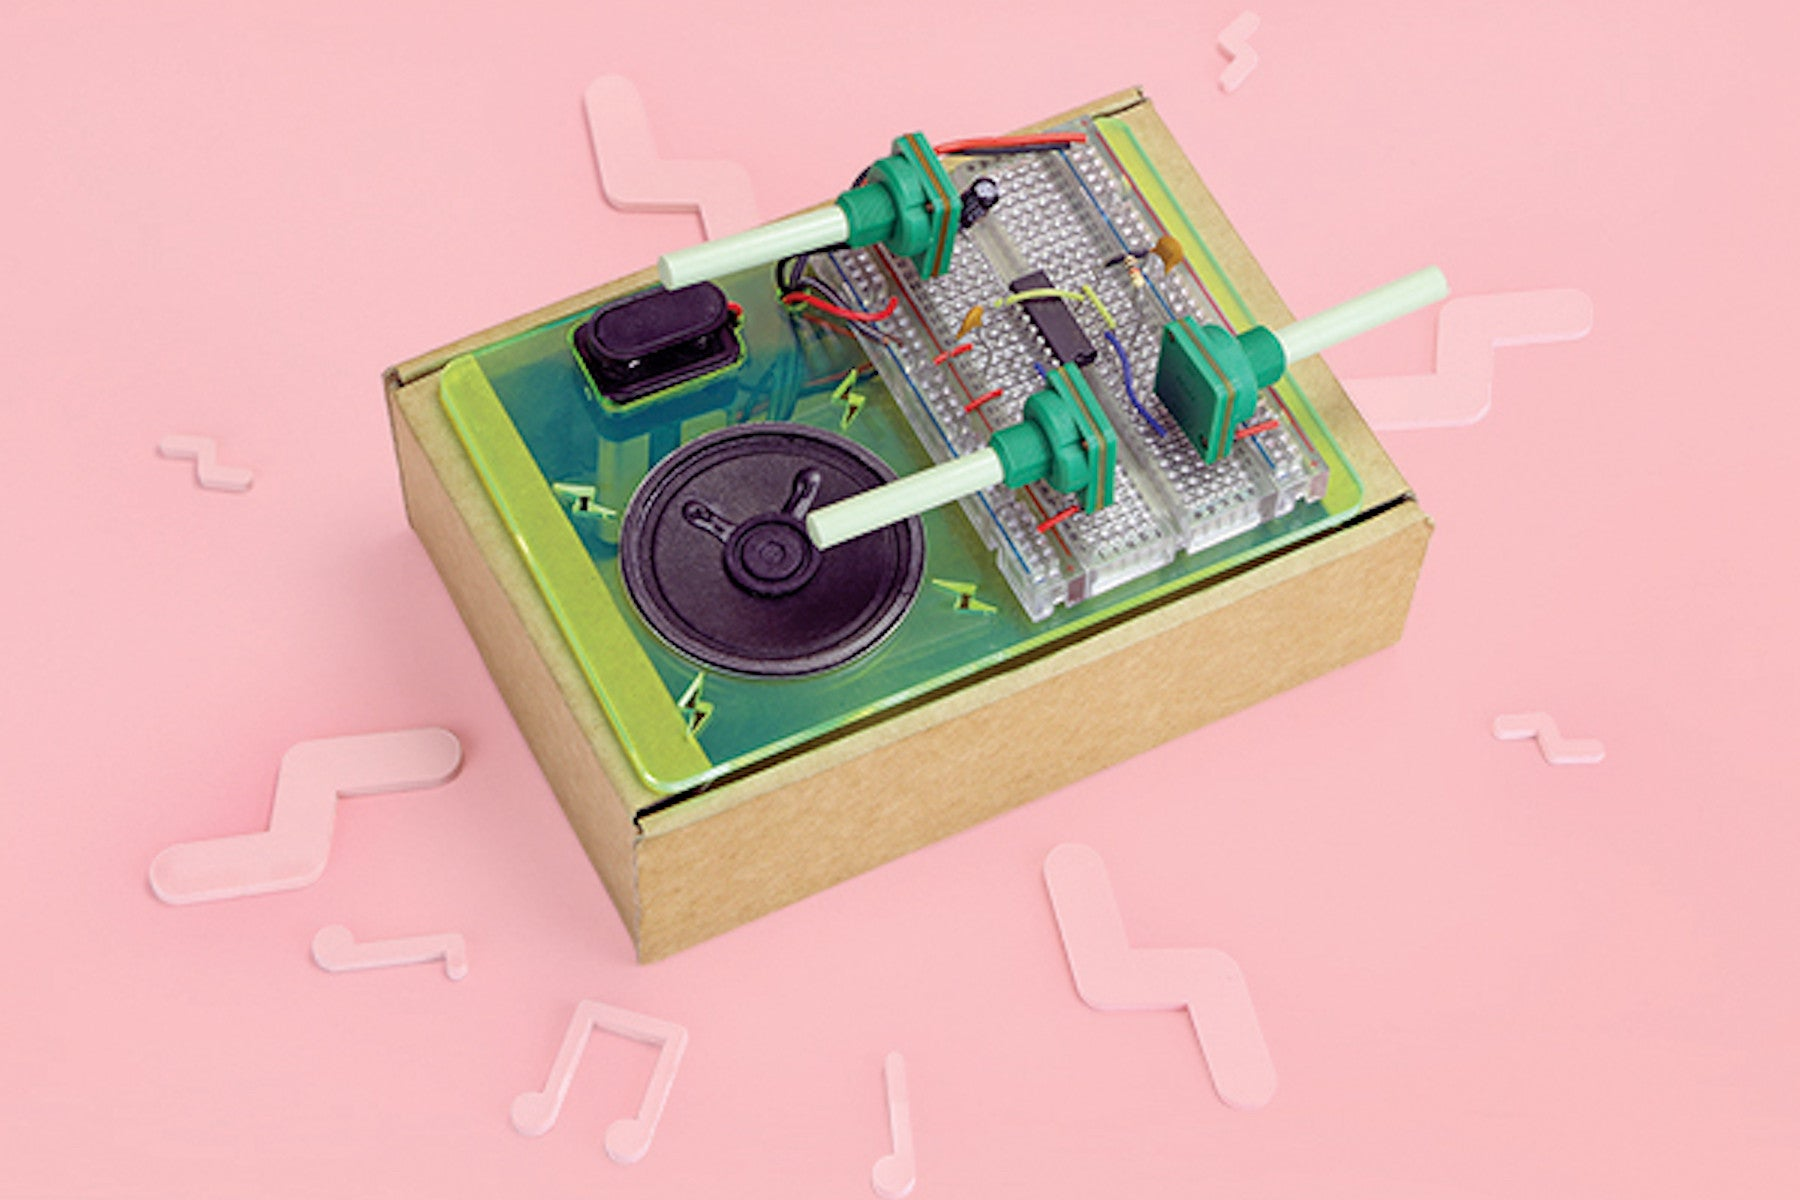 DIY Synth Kit - Akin Tech